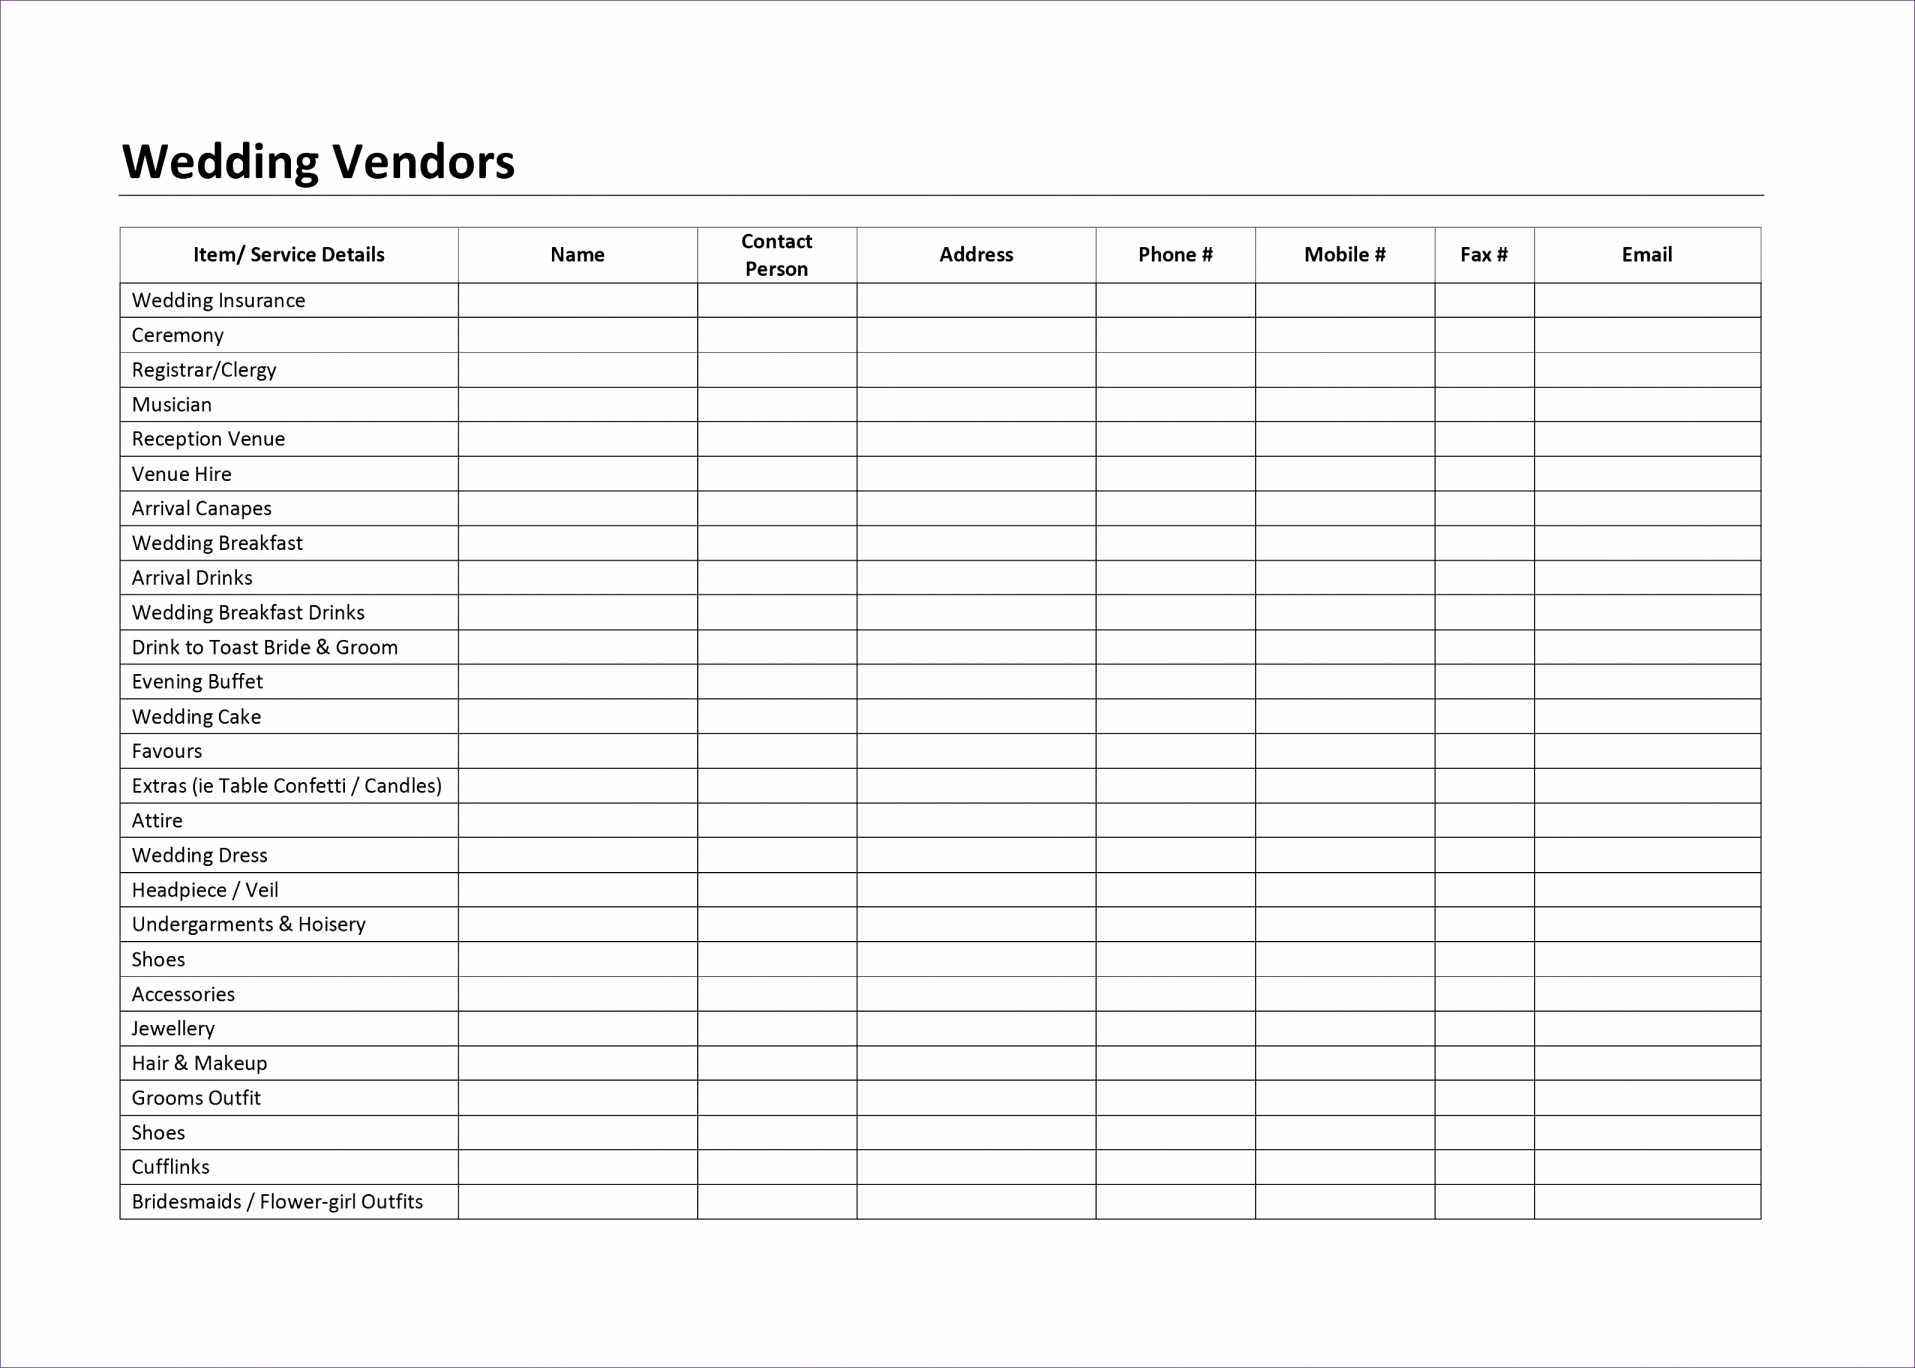 Insurance Commission Tracking Spreadsheet Regarding 14 Unique Insurance Commission Tracking Spreadsheet  Twables.site